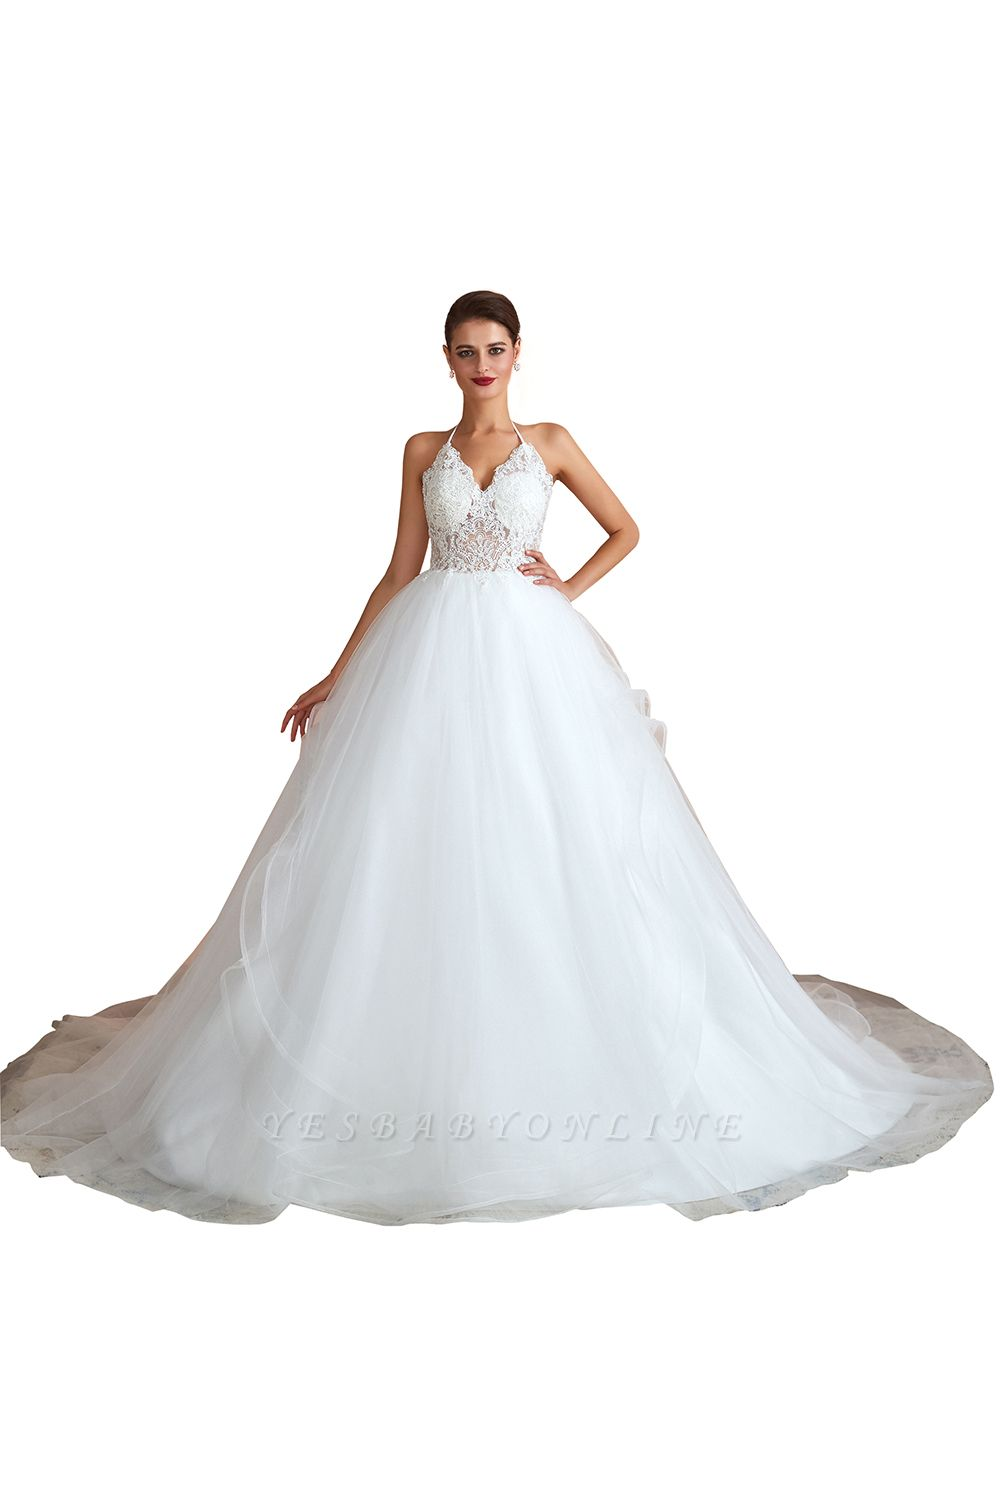 Halter Backless Sexy Cheap Ball Gown Wedding Dresses | Affordable Tulle Bridal Gowns